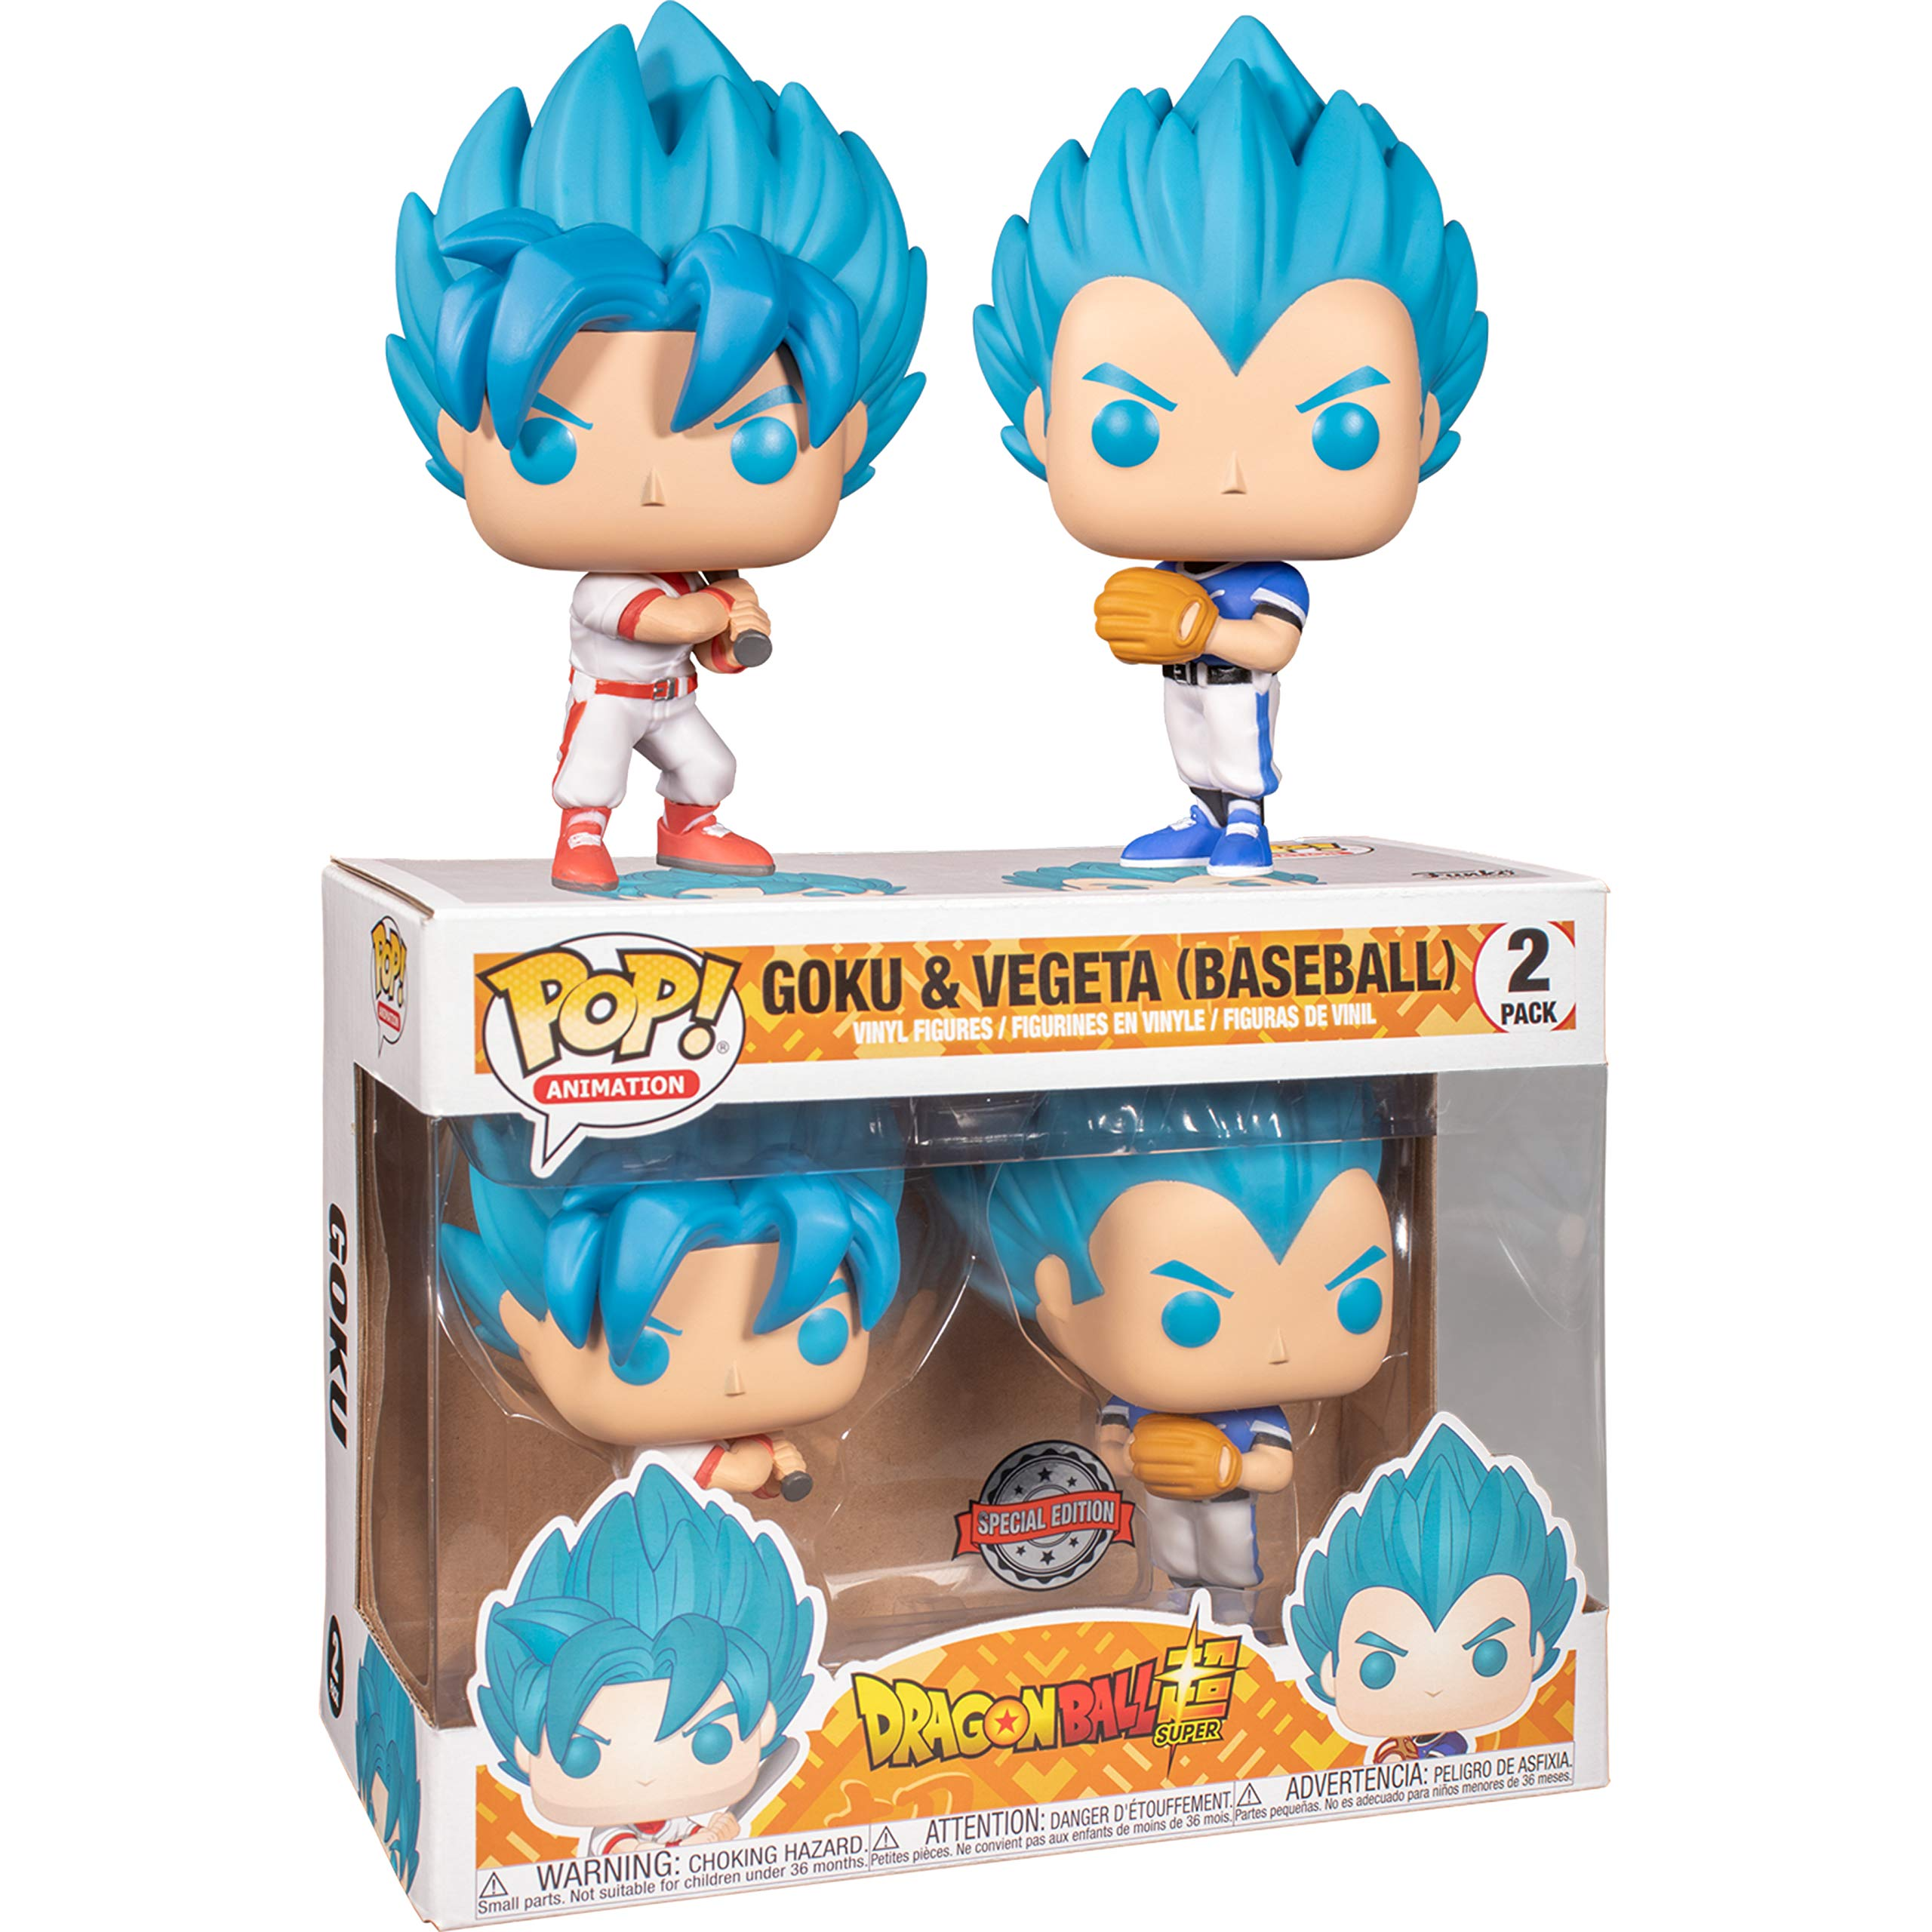 Funko Pop Animation: DBS– Goku & Vegeta (Baseball) 2PK (Exc): Amazon.es: Juguetes y juegos